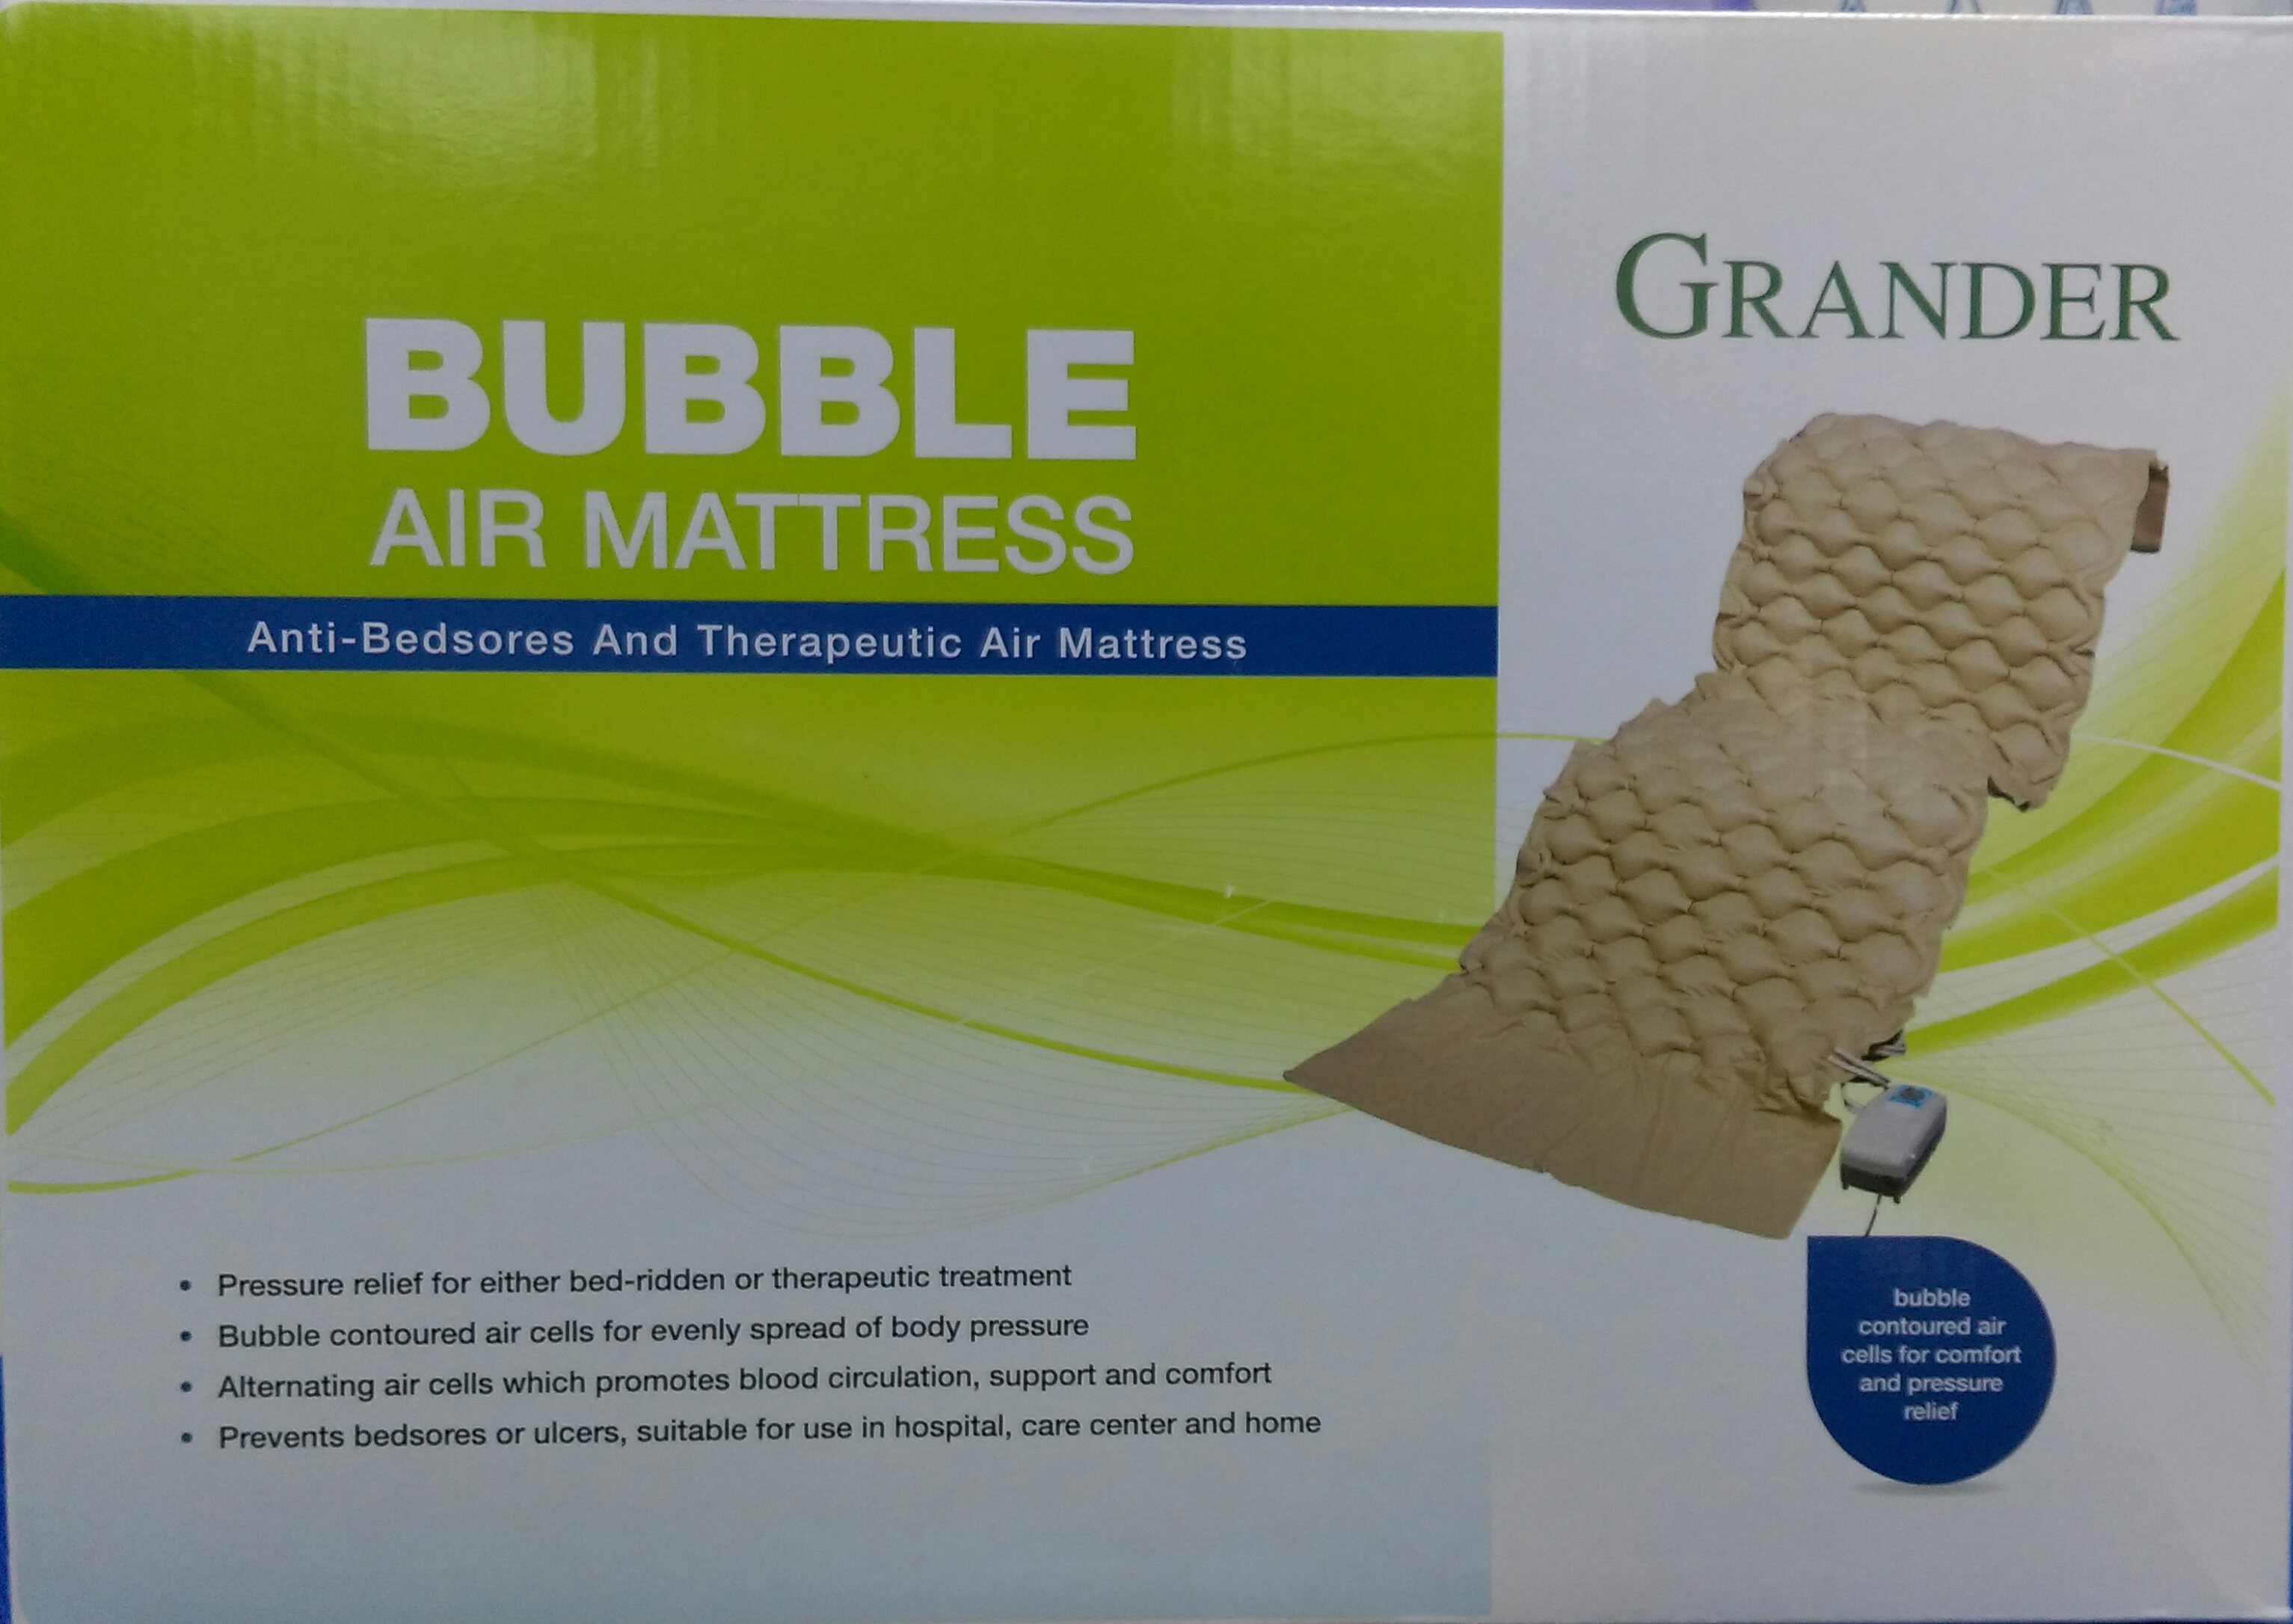 grander bubble air mattress and therapeutic air mattress